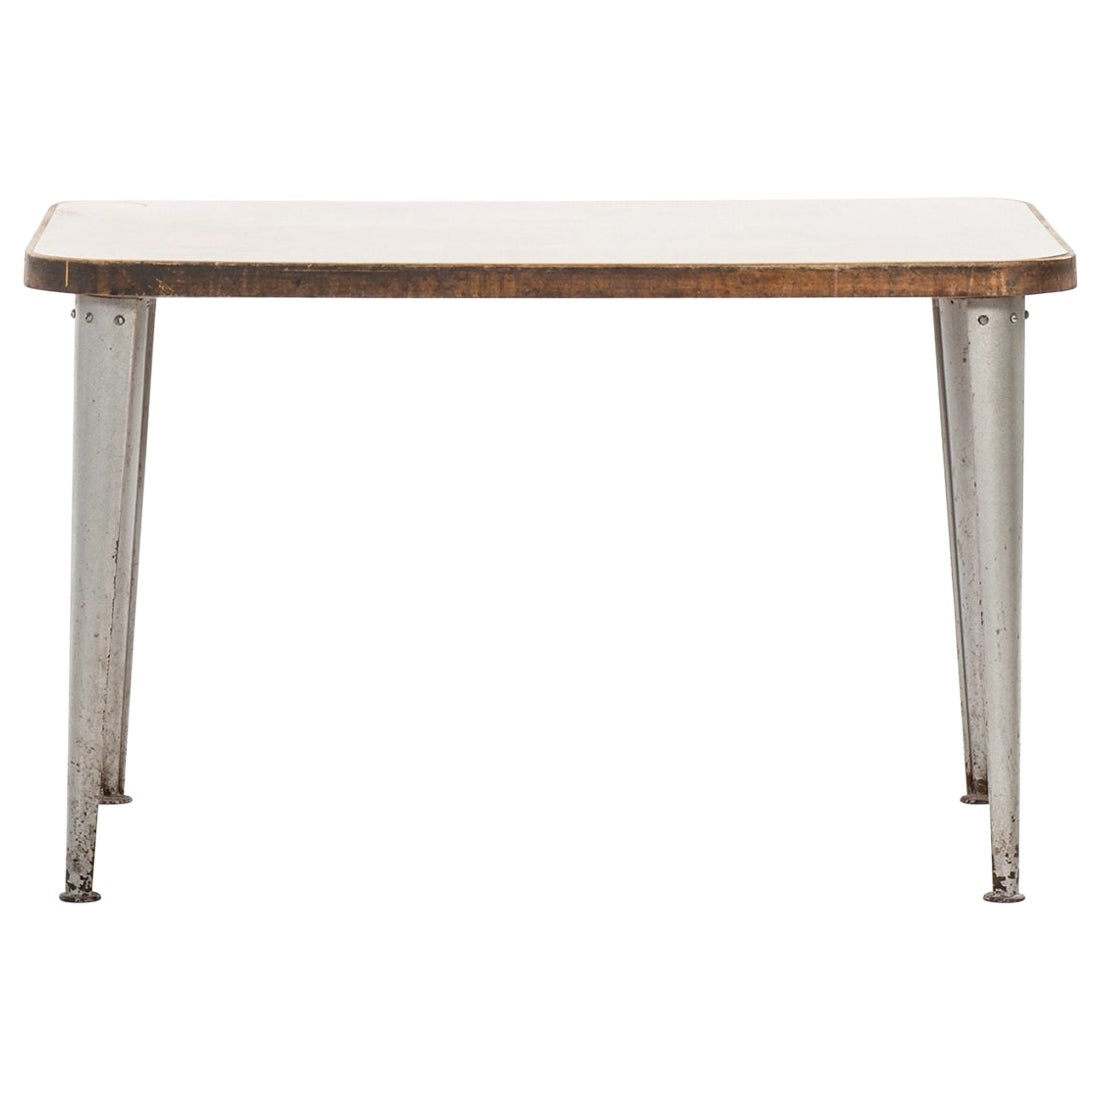 Work Table / Desk in the Style of Jean Prouvé Probably Produced in Sweden